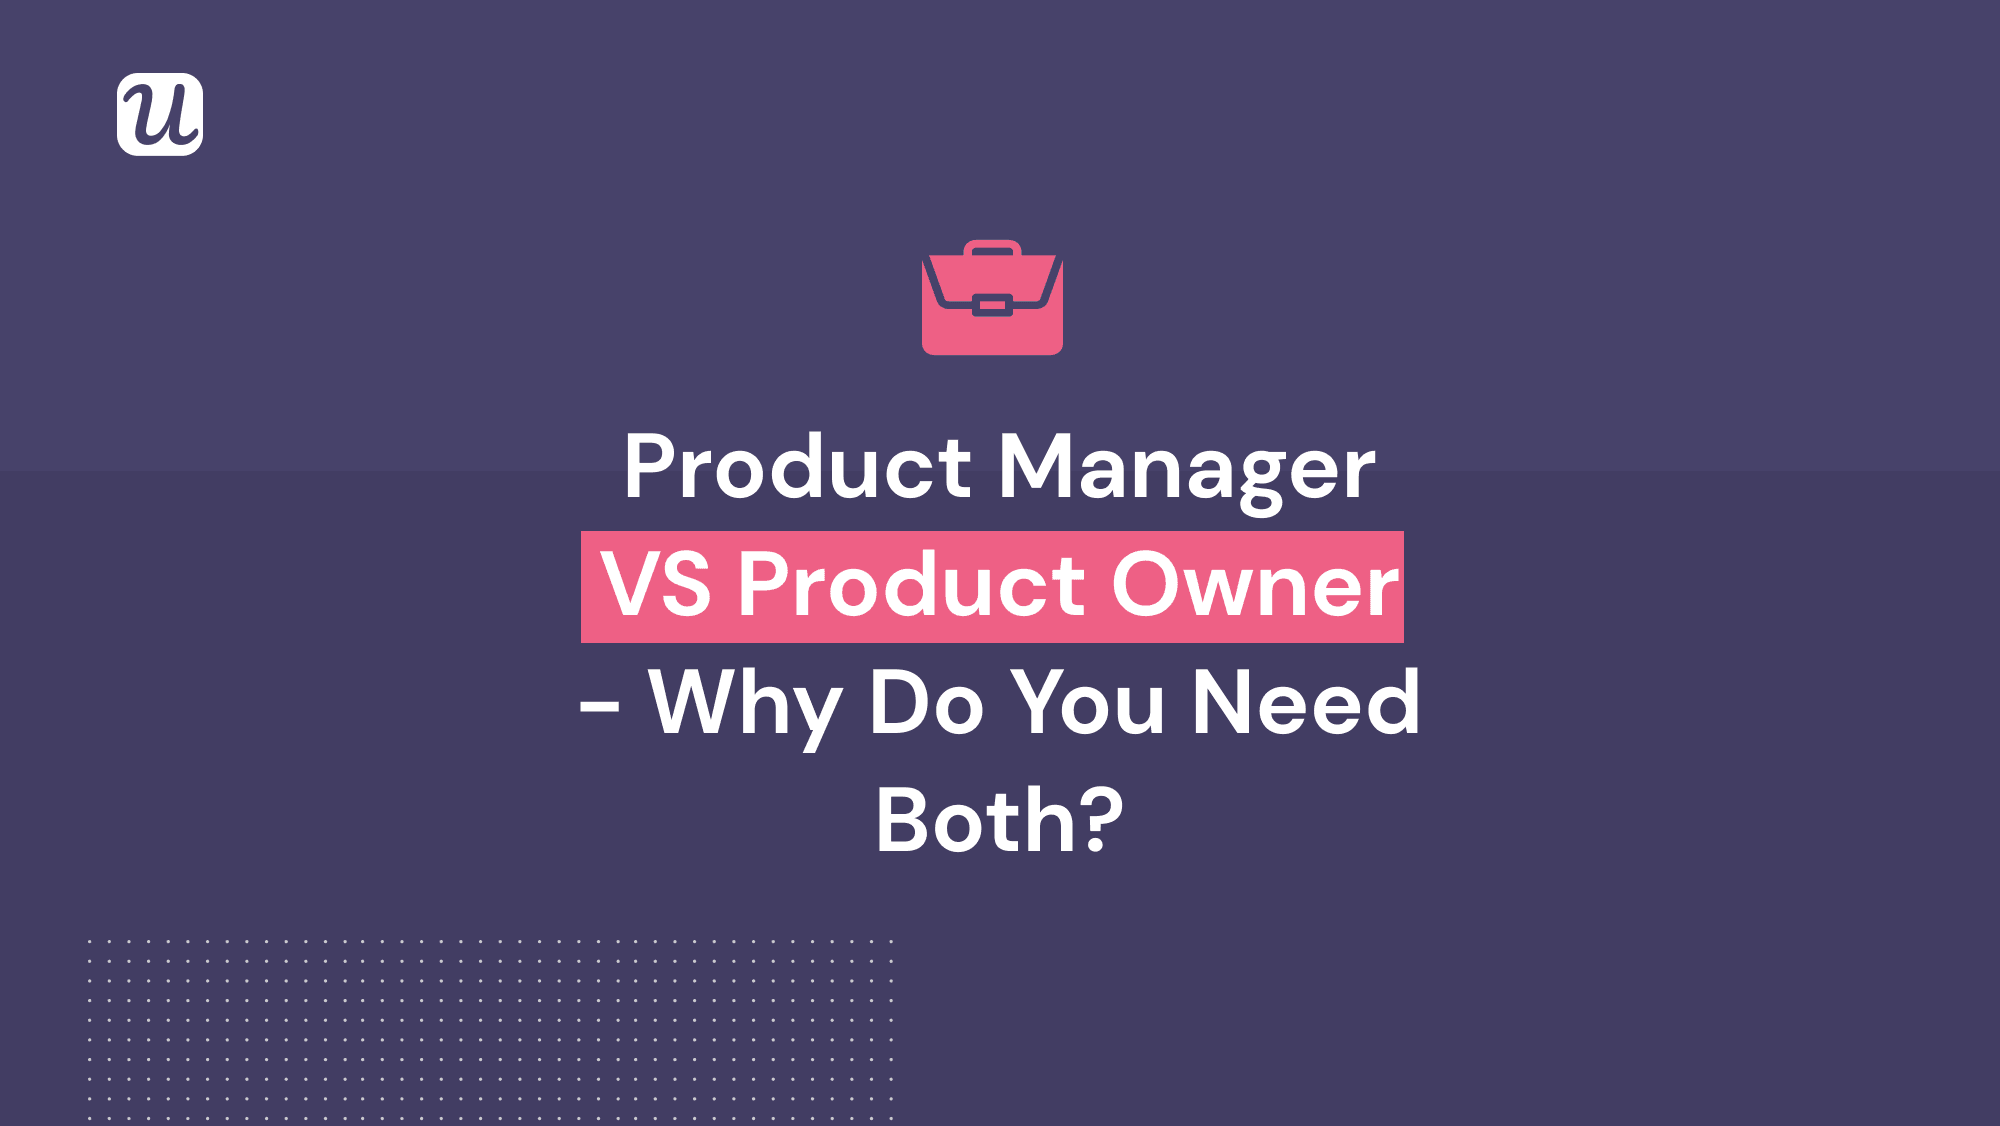 Product Owner vs. Product Manager: Differences, Role, Duties & Why You Need Both